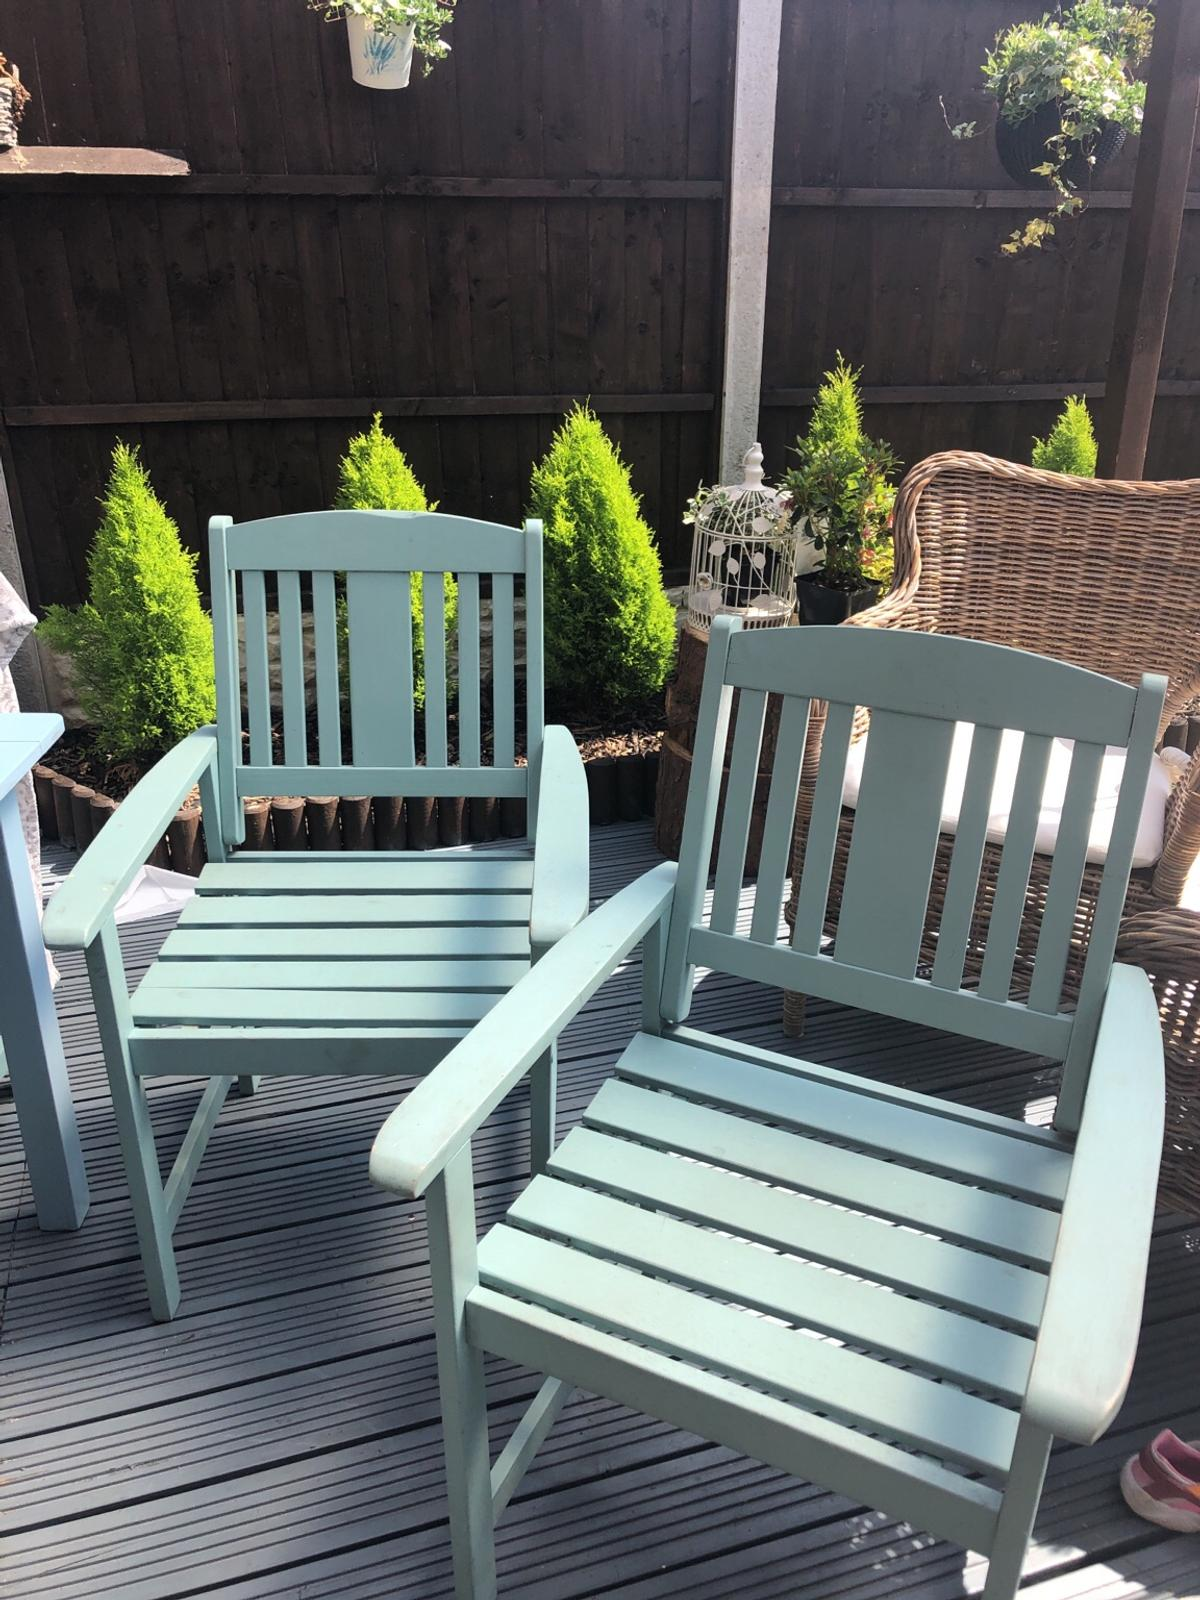 Awe Inspiring Garden Chairs In Coventry For 30 00 For Sale Shpock Theyellowbook Wood Chair Design Ideas Theyellowbookinfo